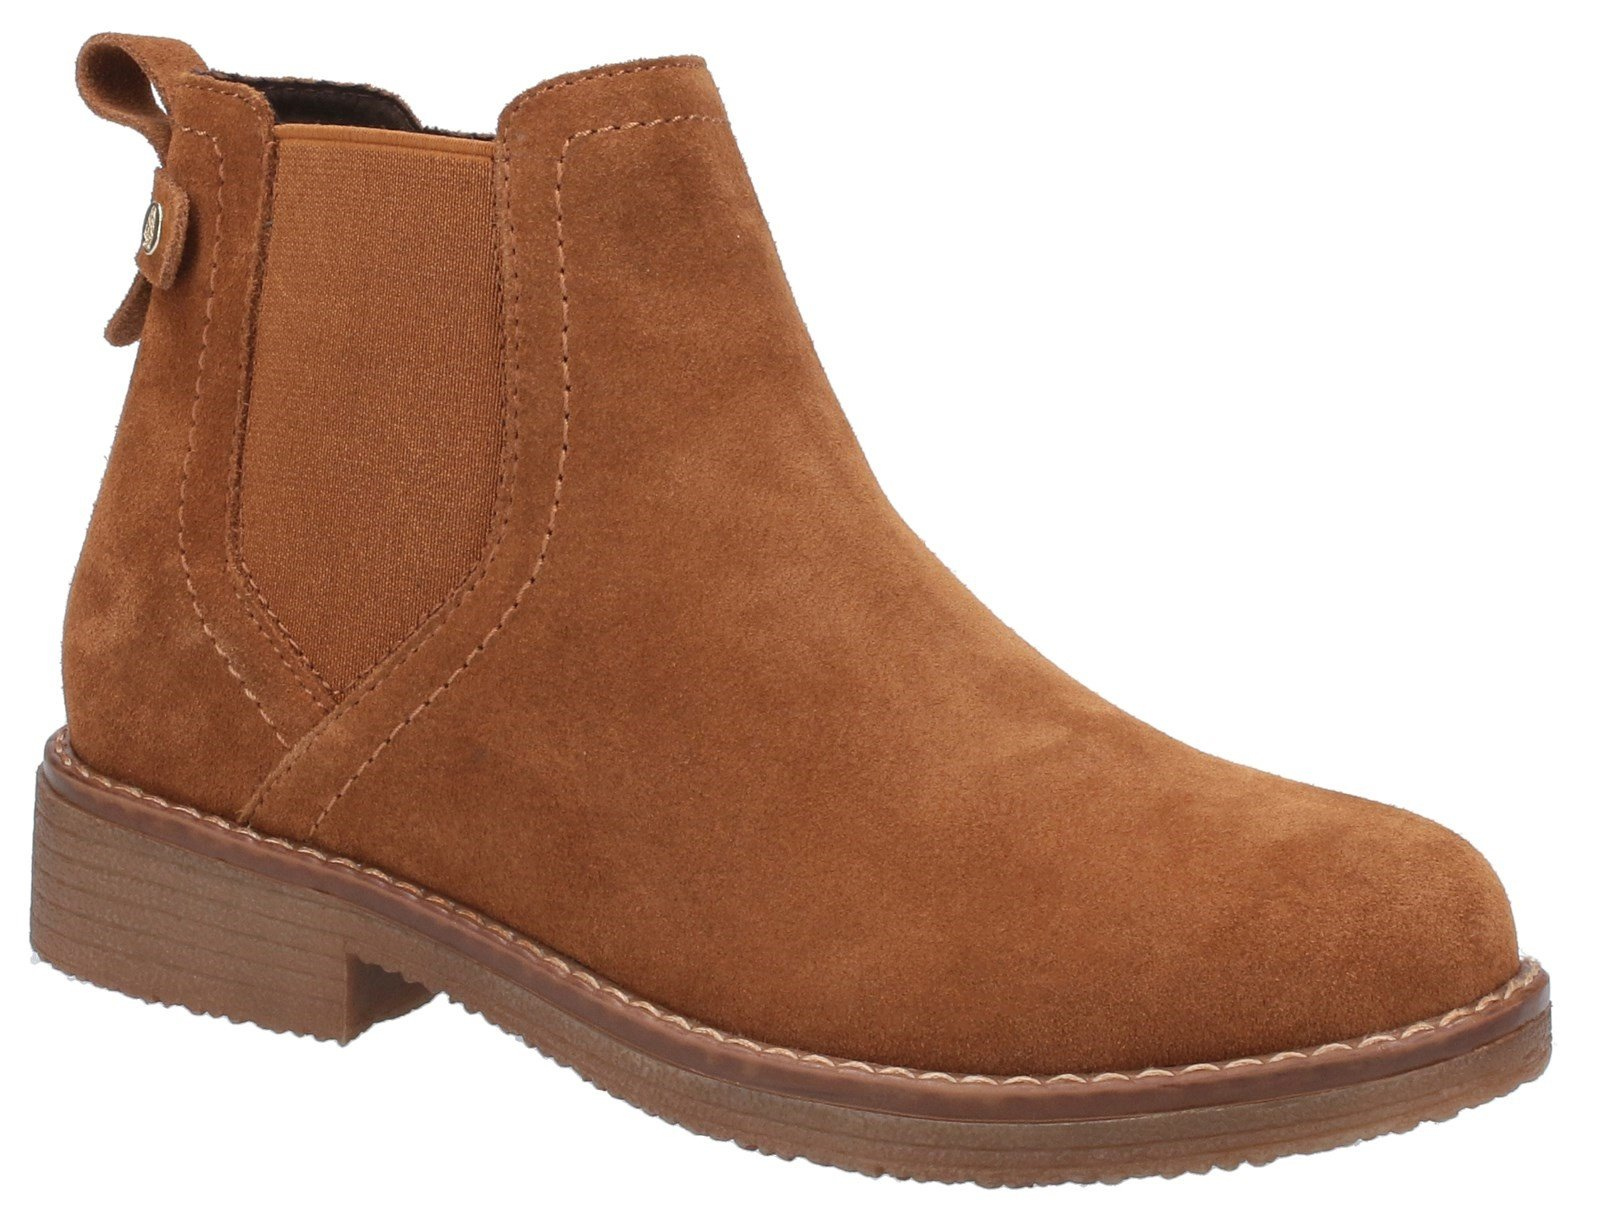 Hush Puppies Women's Maddy Ladies Ankle Boots Various Colours 31214 - Tan 3